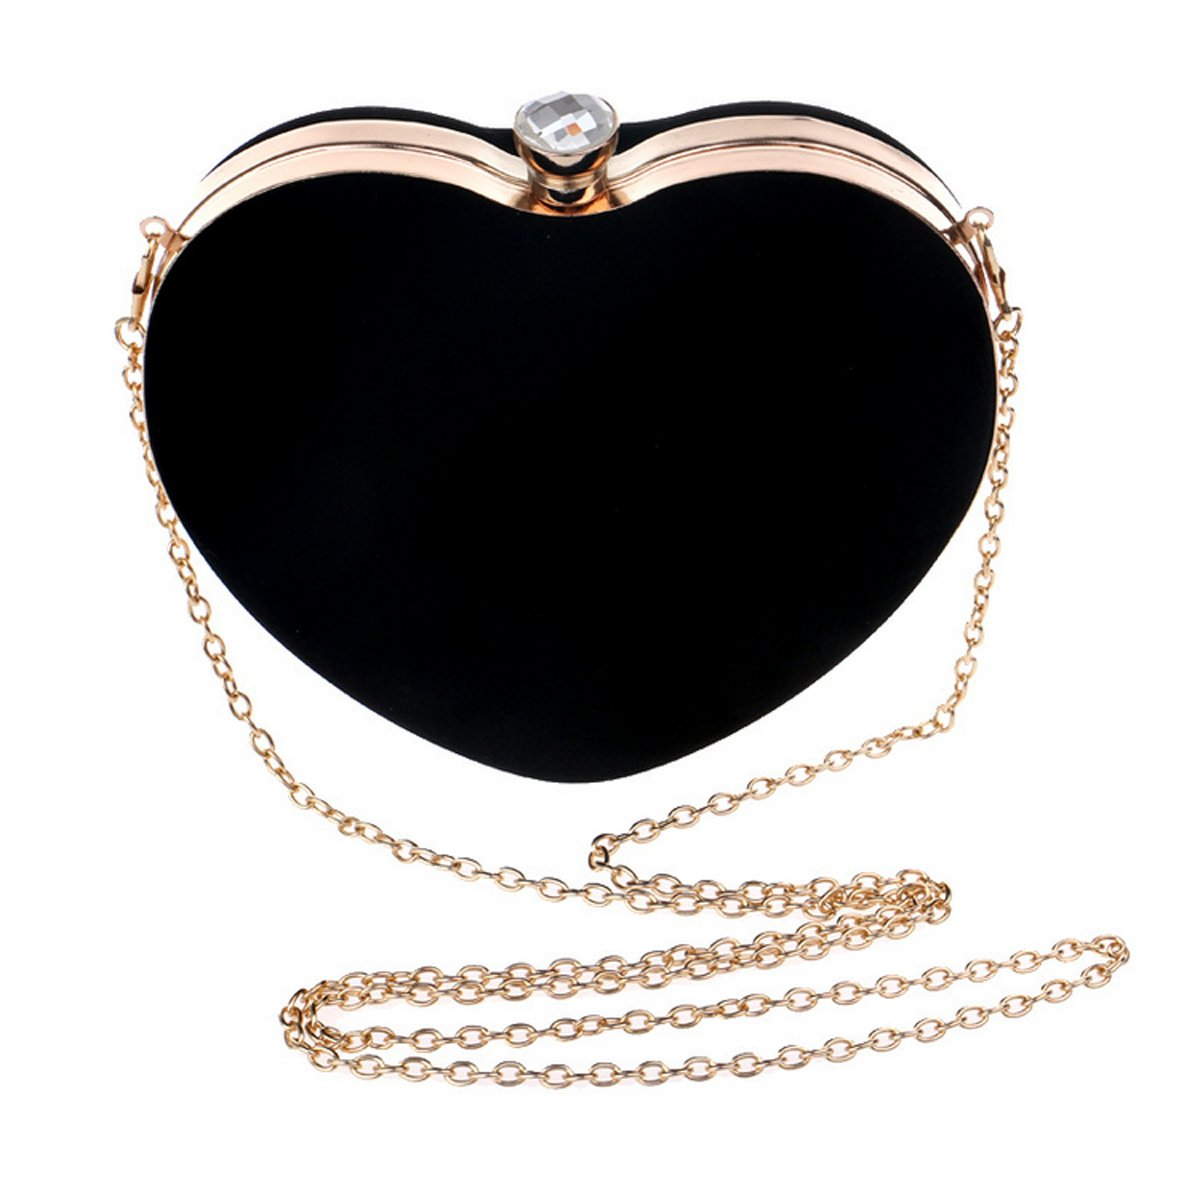 Amazon.com: Queena Women Fashion Heart Shaped Evening Bag Suede Handbag Clutch Party Bag Tote Purse Bag Black: Shoes